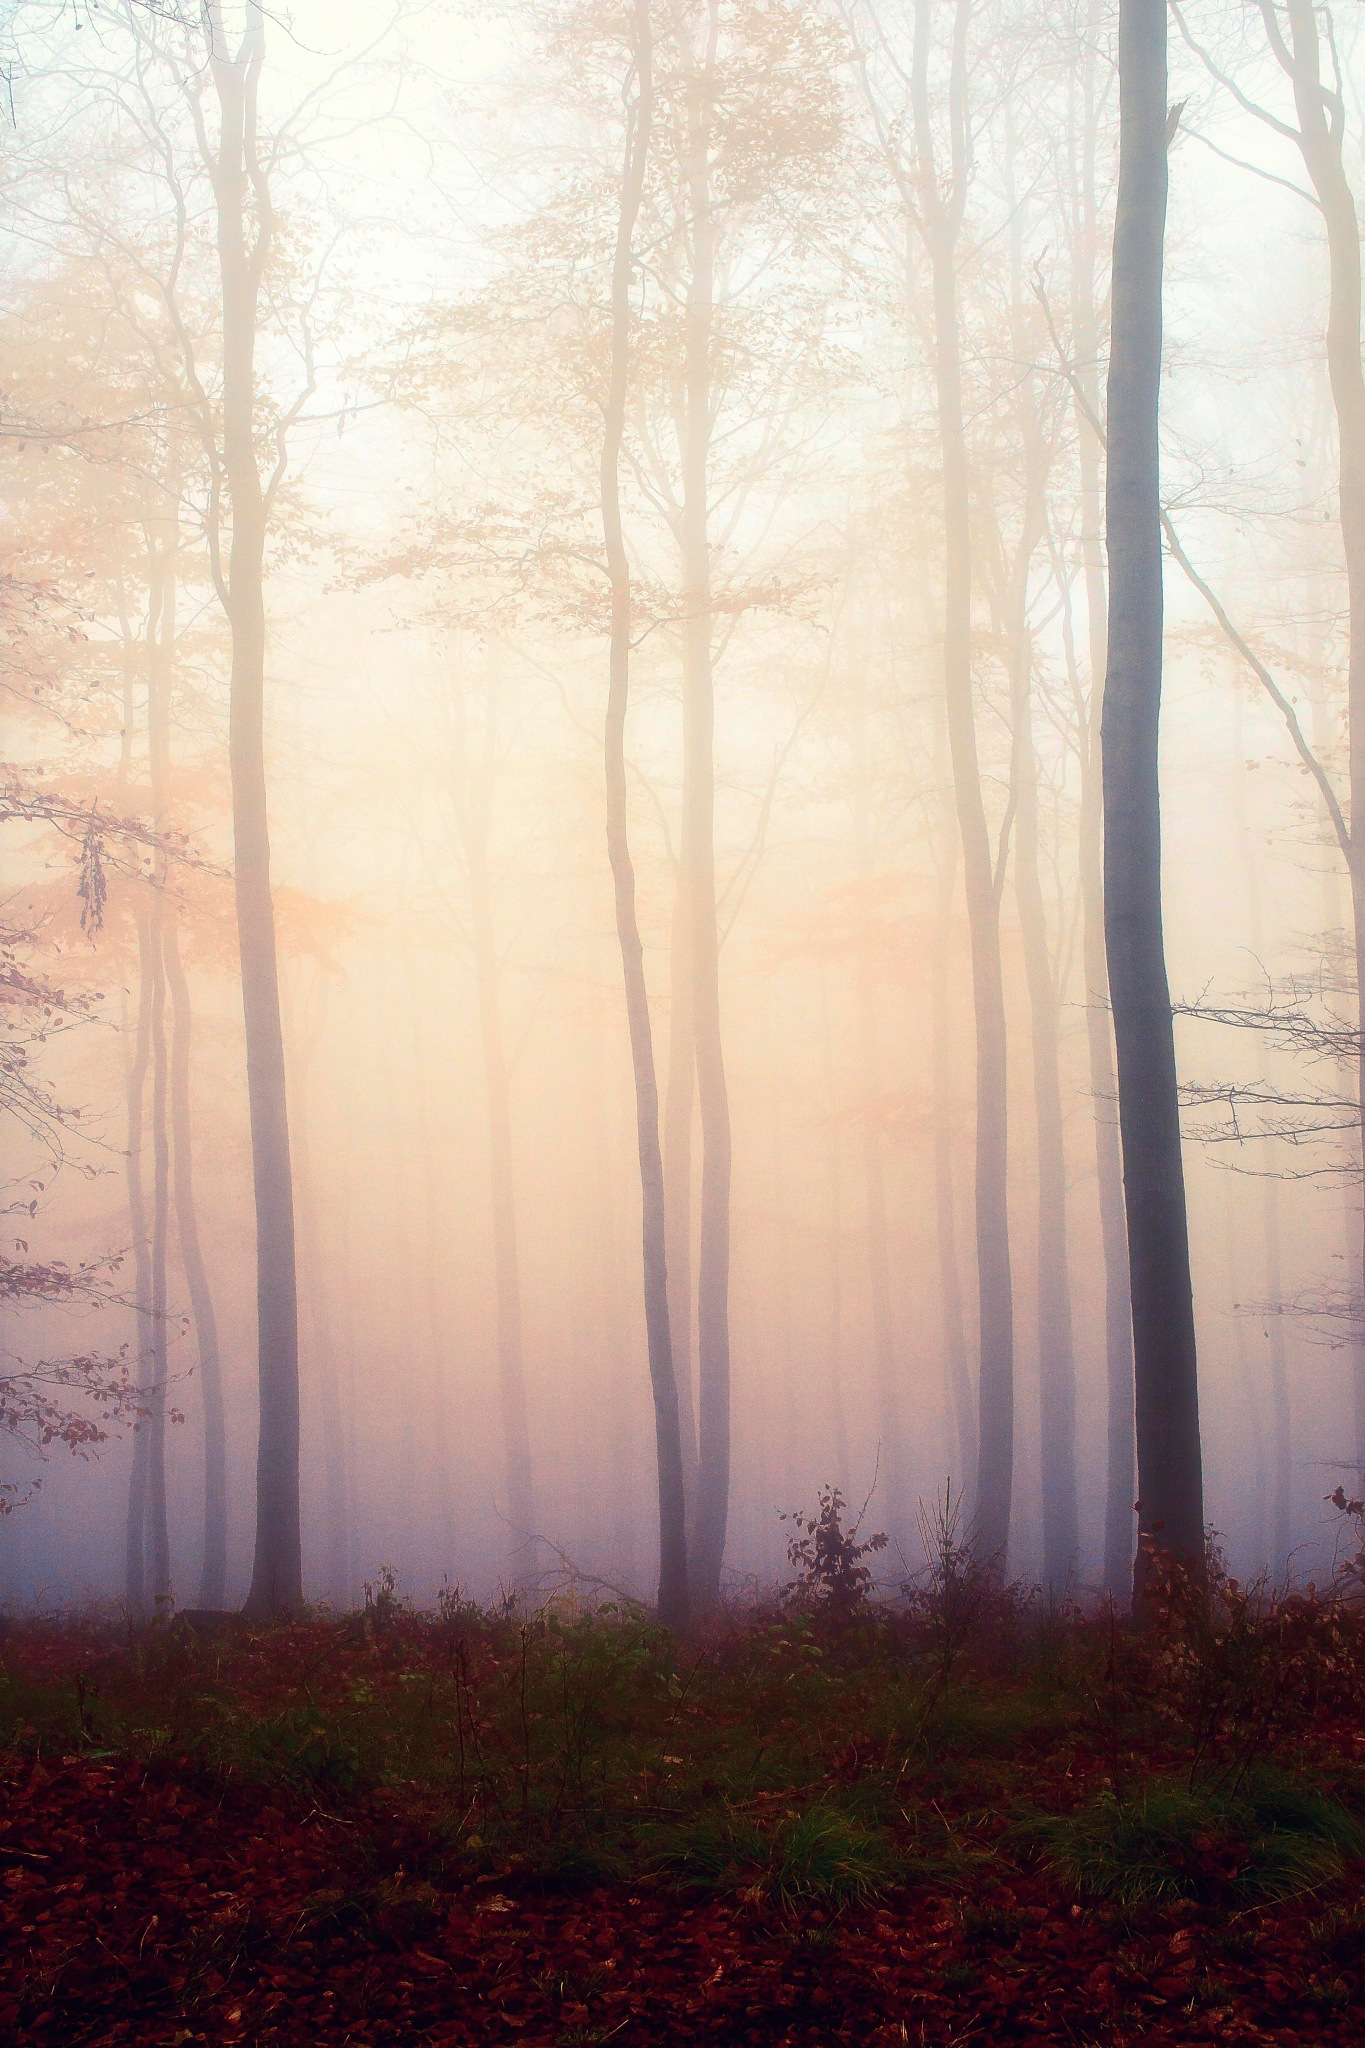 Misty forest by AdolfBeck